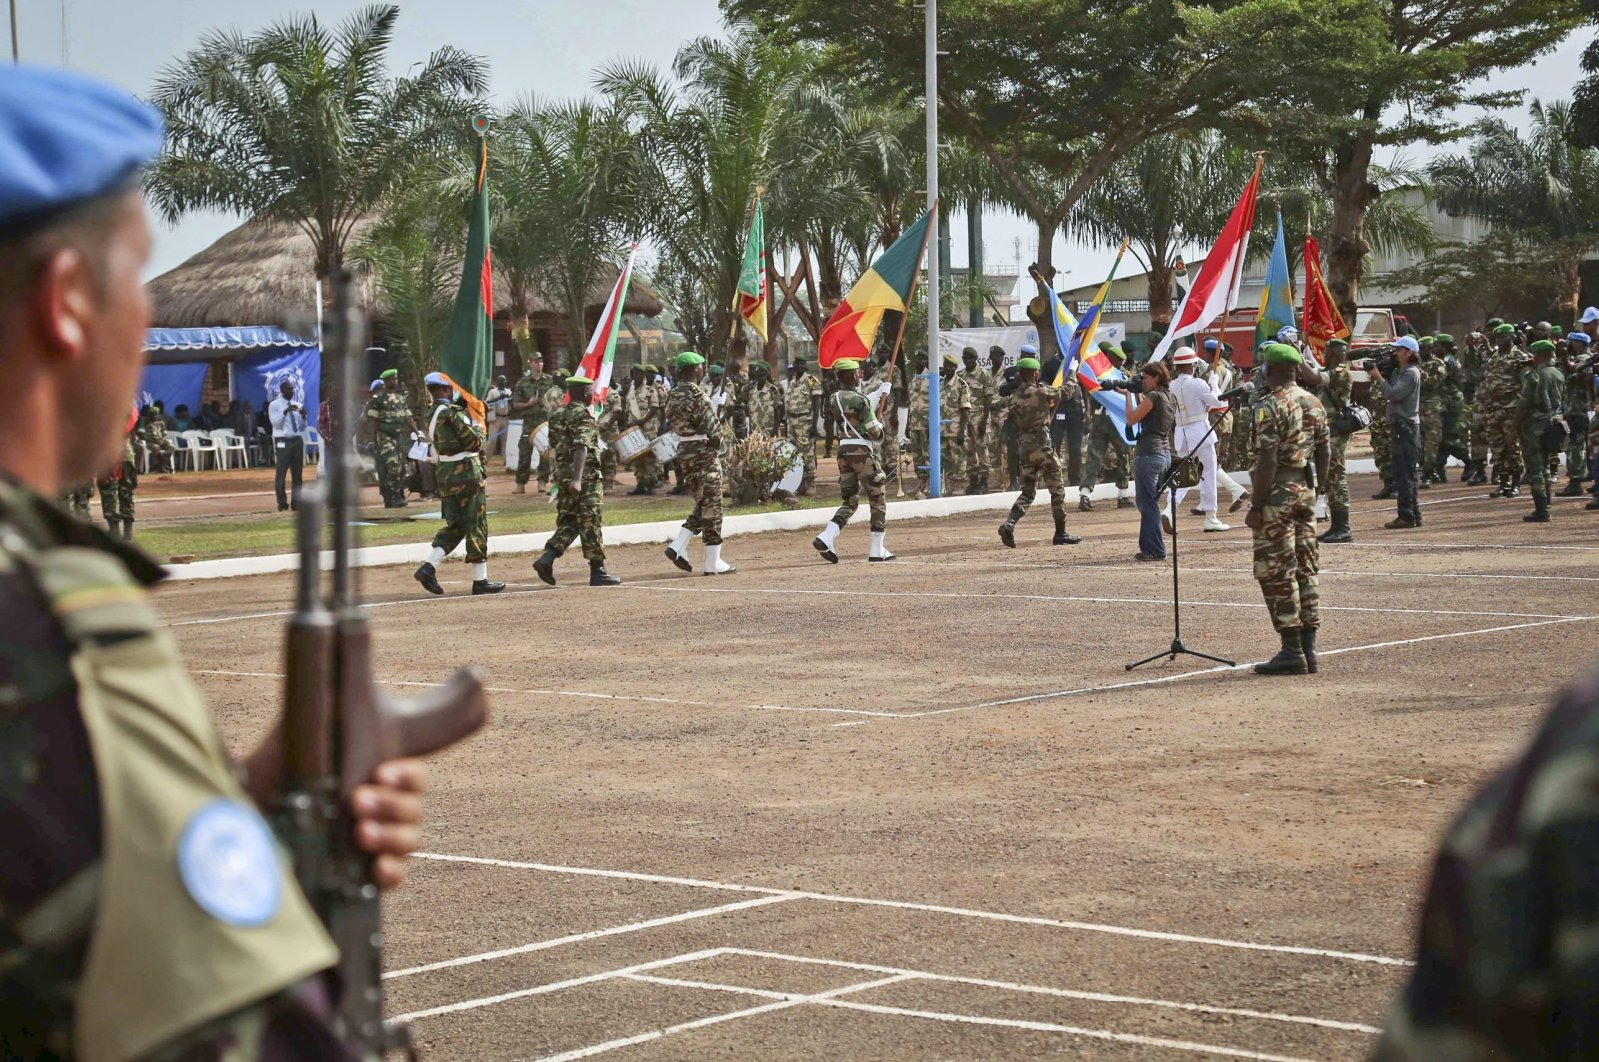 U.N. peacekeeping troops take part in a ceremony in the capital city of Bangui, Central African Republic, Sept. 15, 2014. (AP Photo)